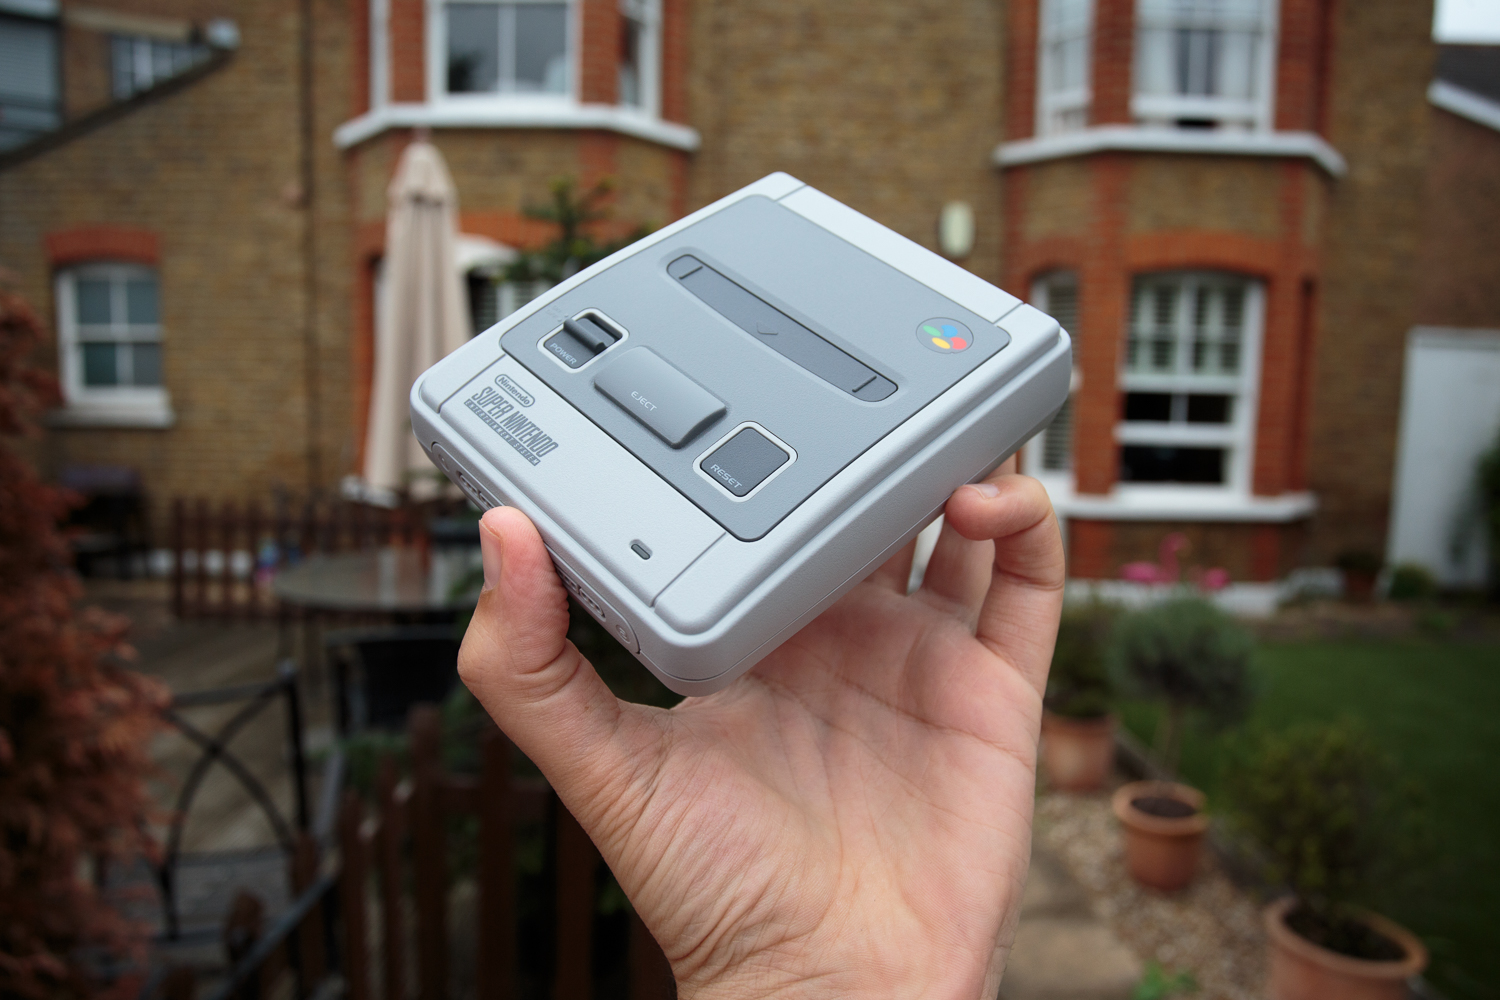 SNES Classic Mini: Quick preview by someone who has never barrel